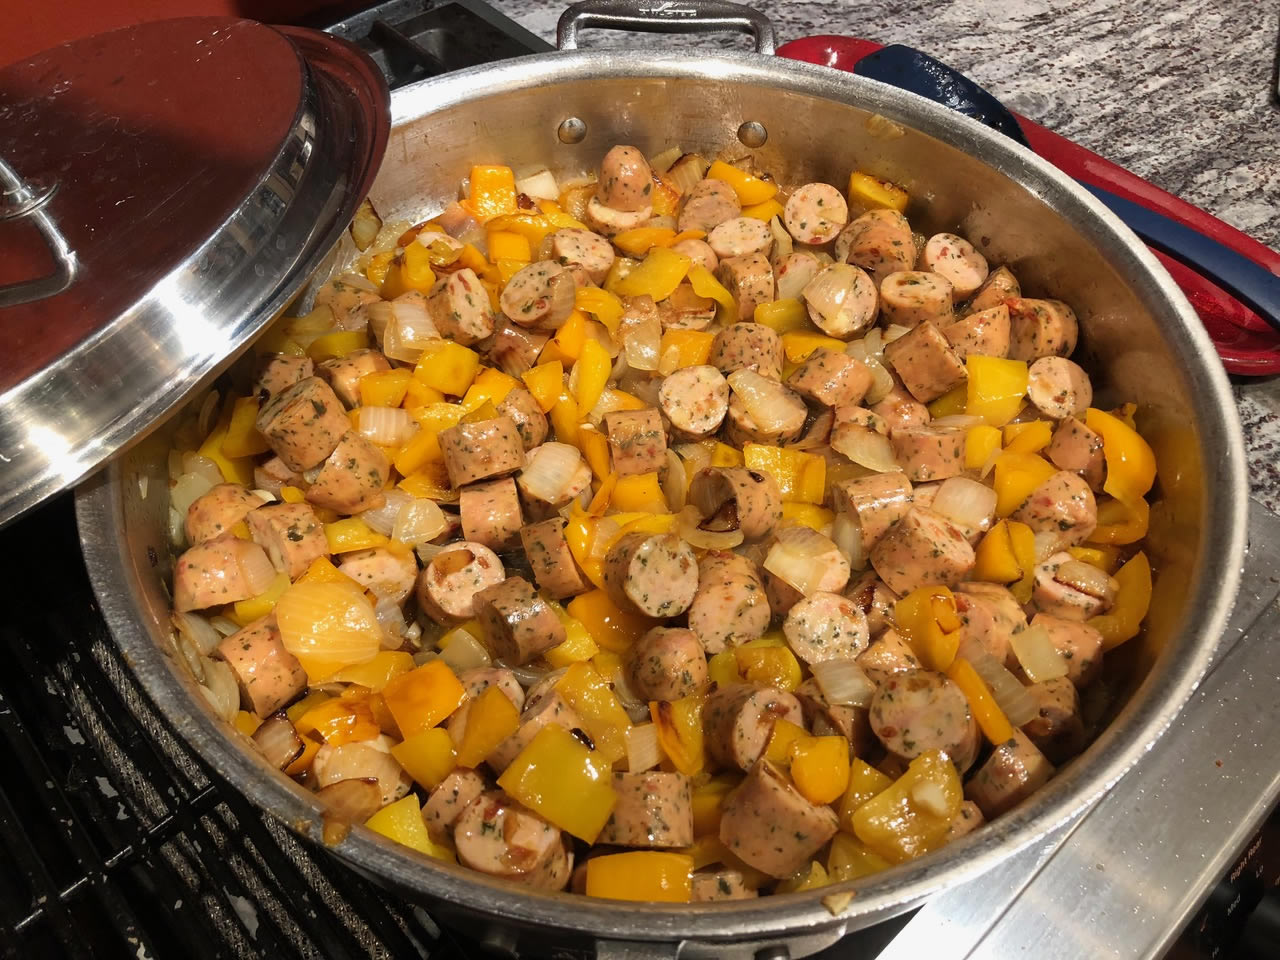 Sausage in a pan with peppers | AnnaMaria's